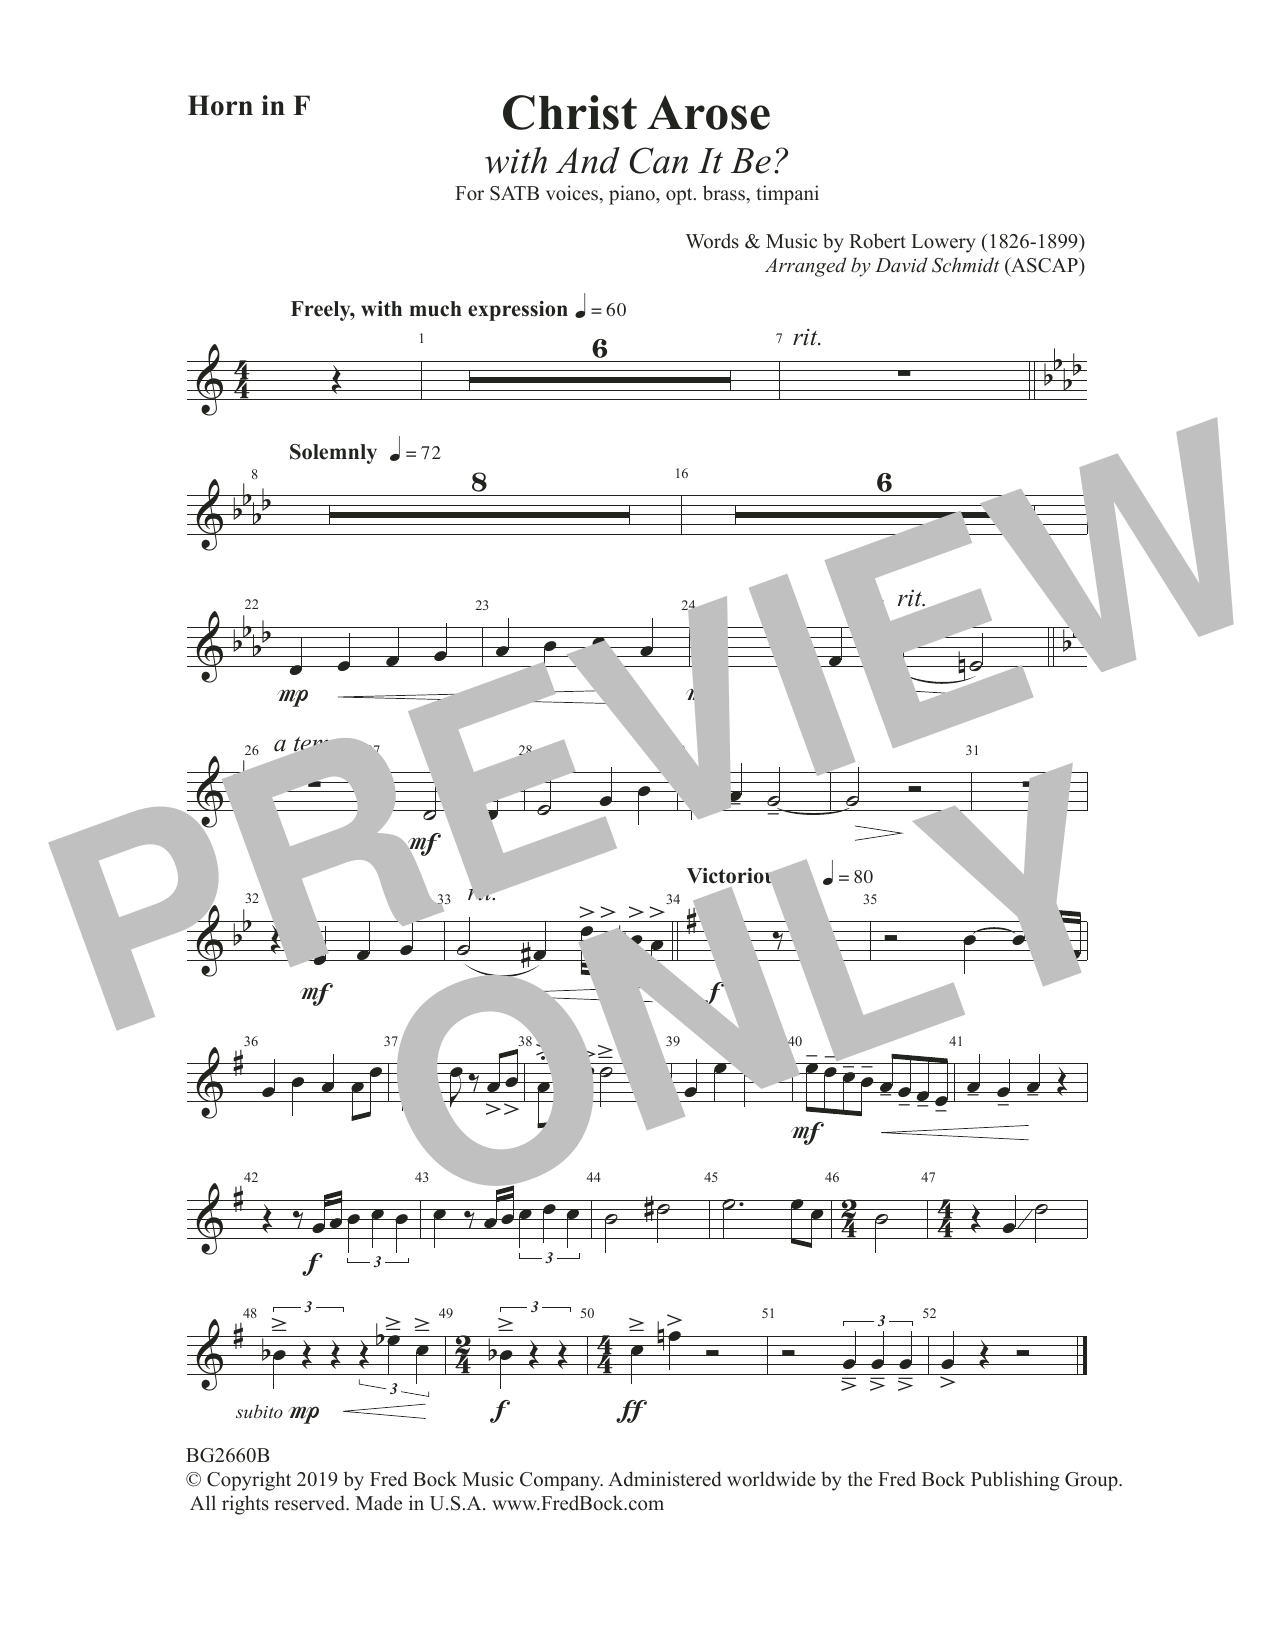 Christ Arose (with And Can It Be?) (arr. David Schmidt) - F Horn Sheet Music